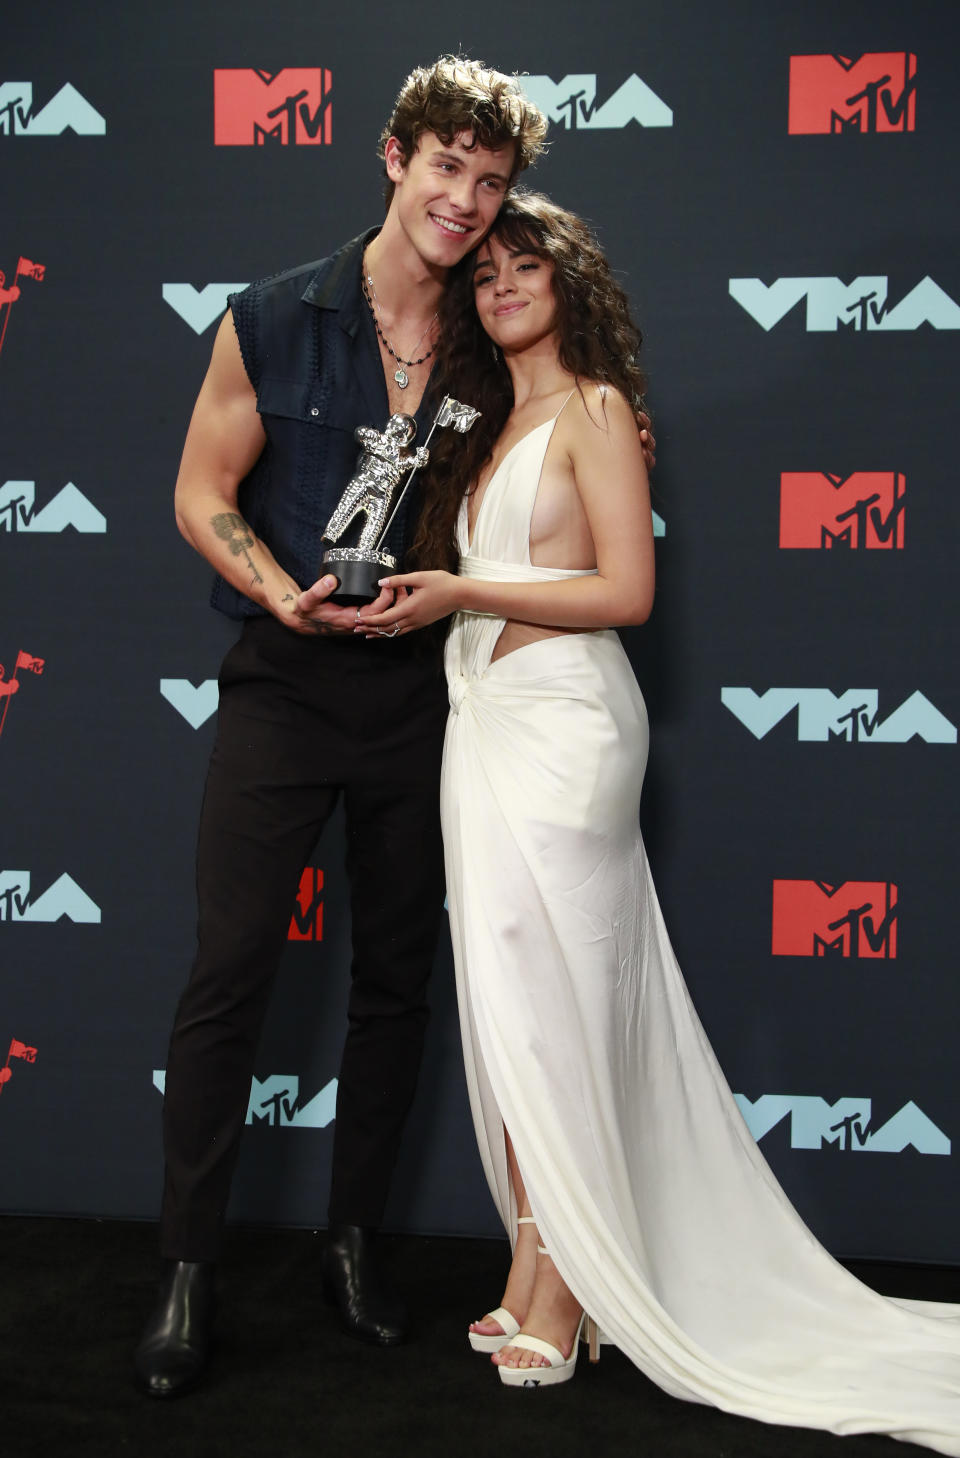 """2019 MTV Video Music Awards - Photo Room - Prudential Center, Newark, New Jersey, U.S., August 26, 2019 - Shawn Mendes and Camila Cabello pose backstage with their Best Collaboration award for """"Senorita."""" REUTERS/Andrew Kelly"""